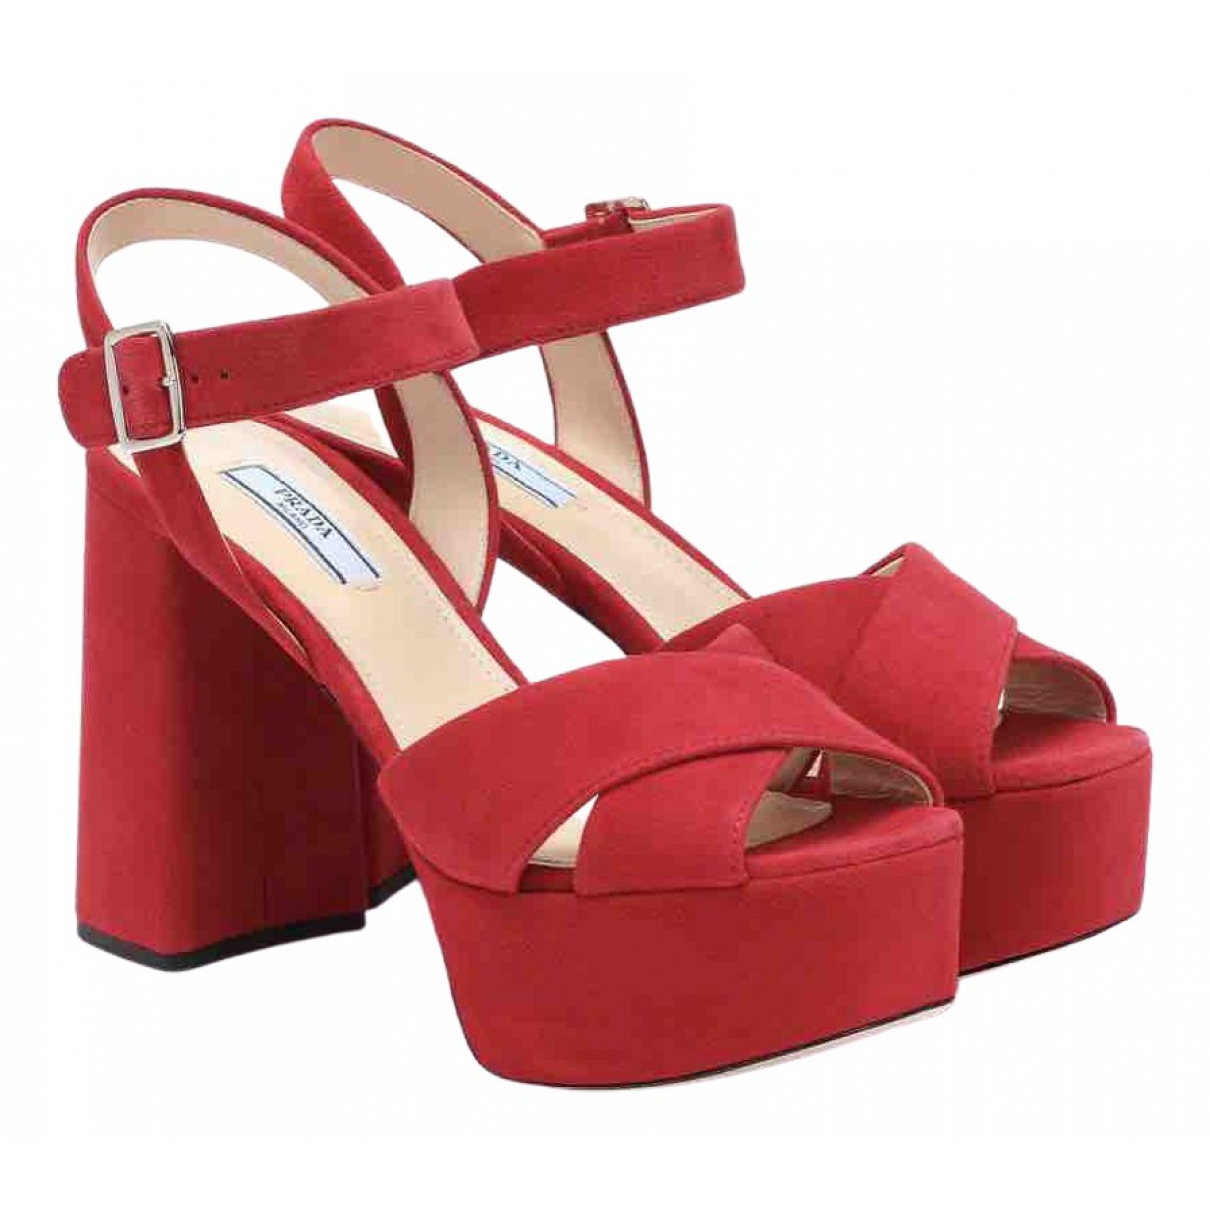 Prada \N Red Suede Sandals for Women 38 EU